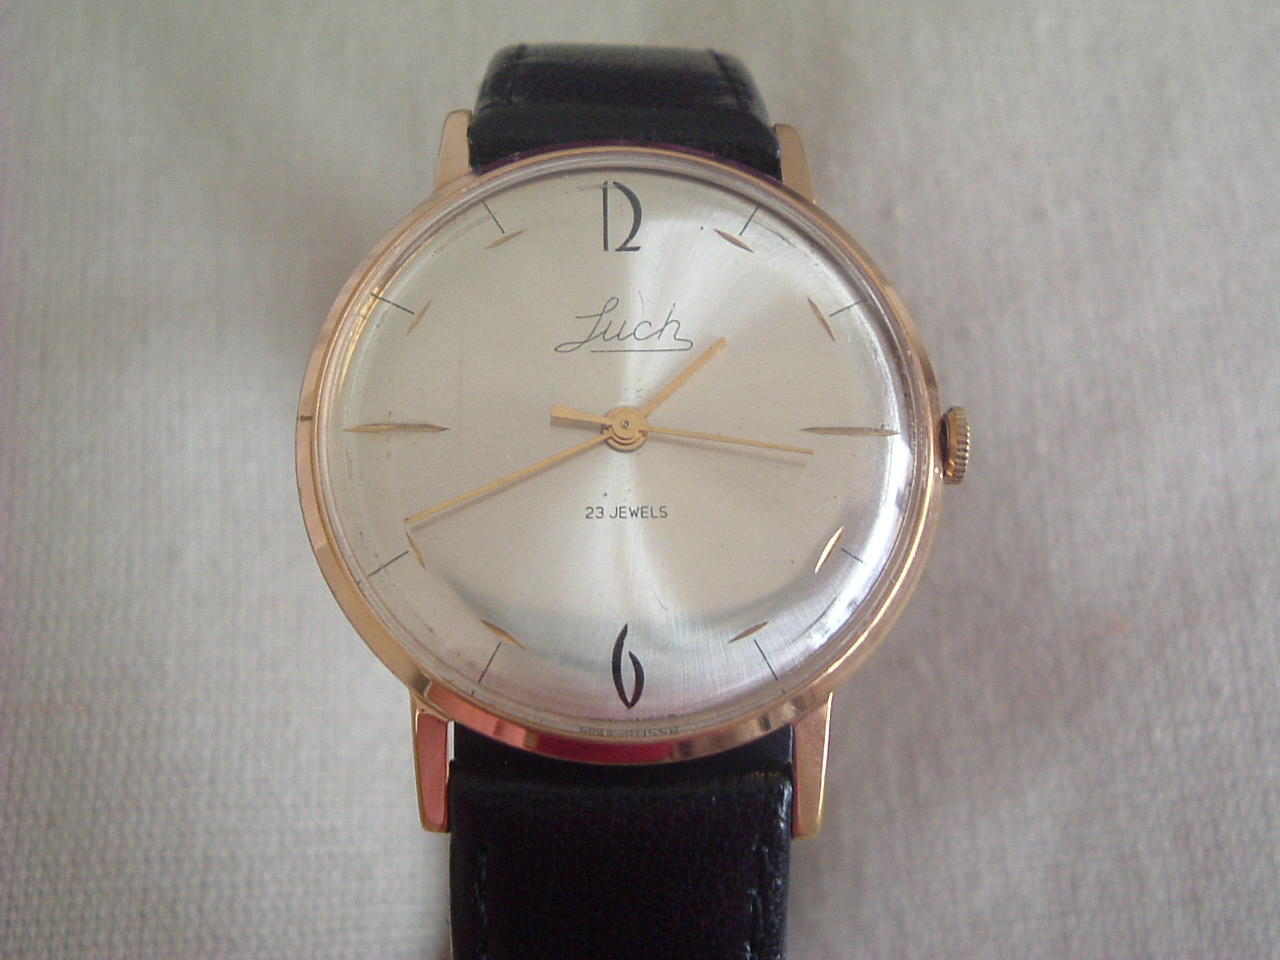 Russ/Russian Watches: POLJOT [VYMPLE] AND LUCH [2209 ...